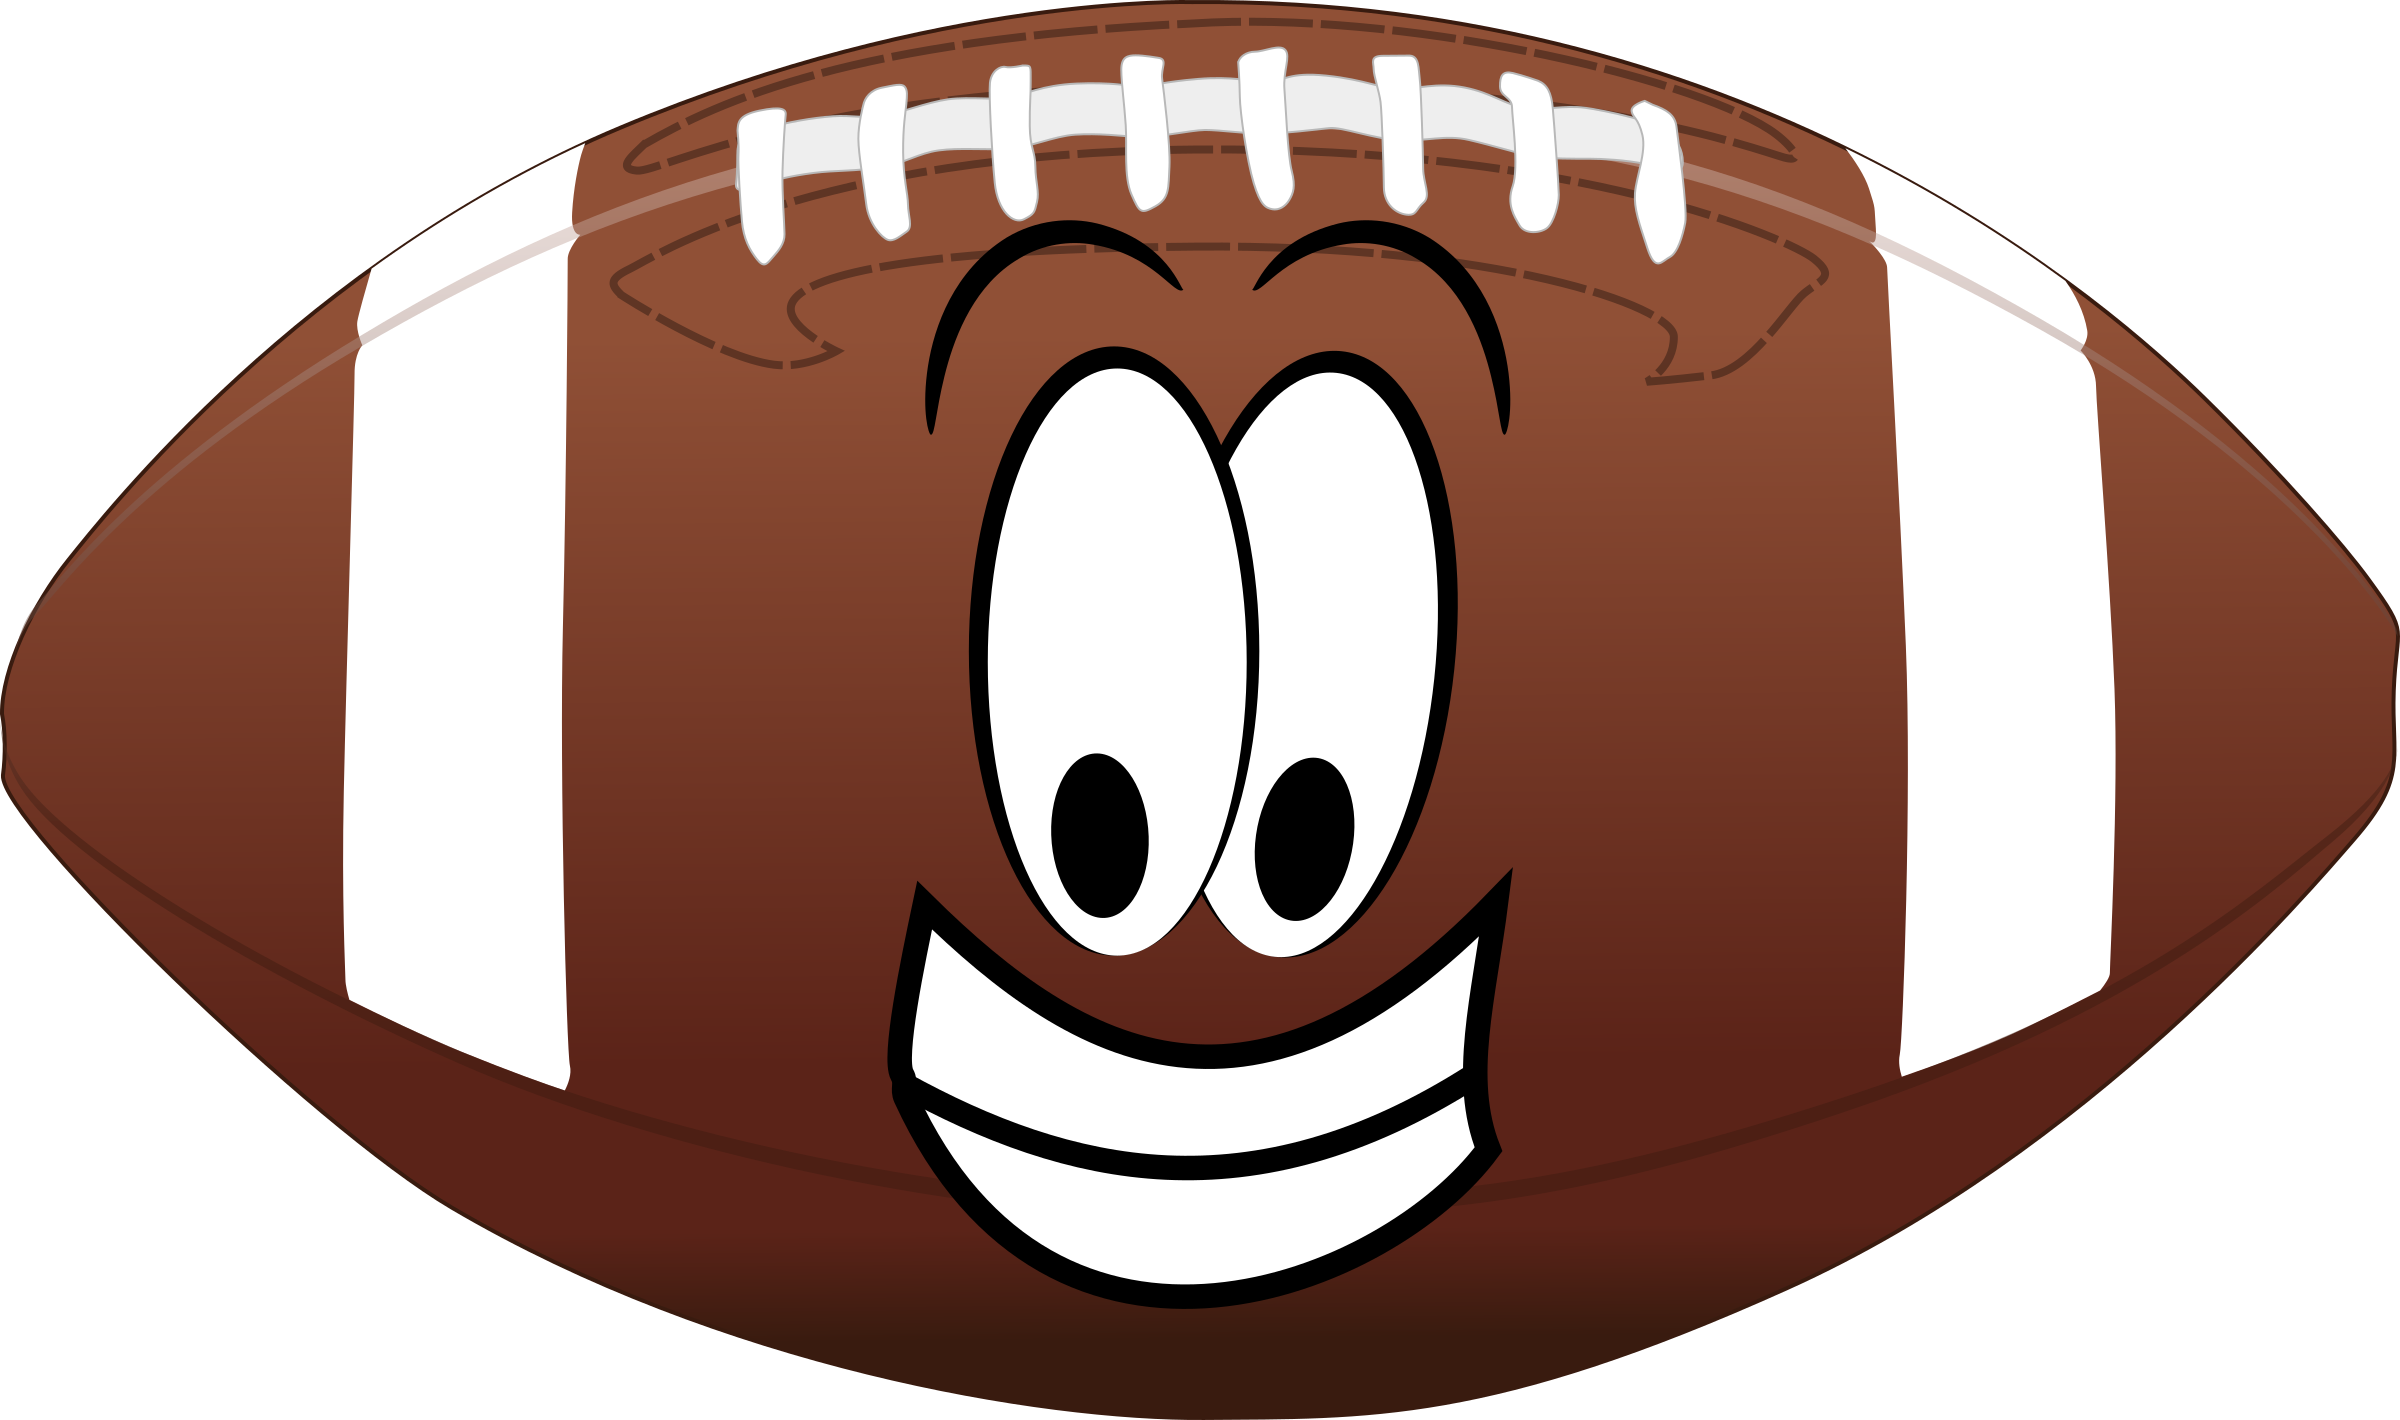 2400x1420 Free Animated Football Clipart Group